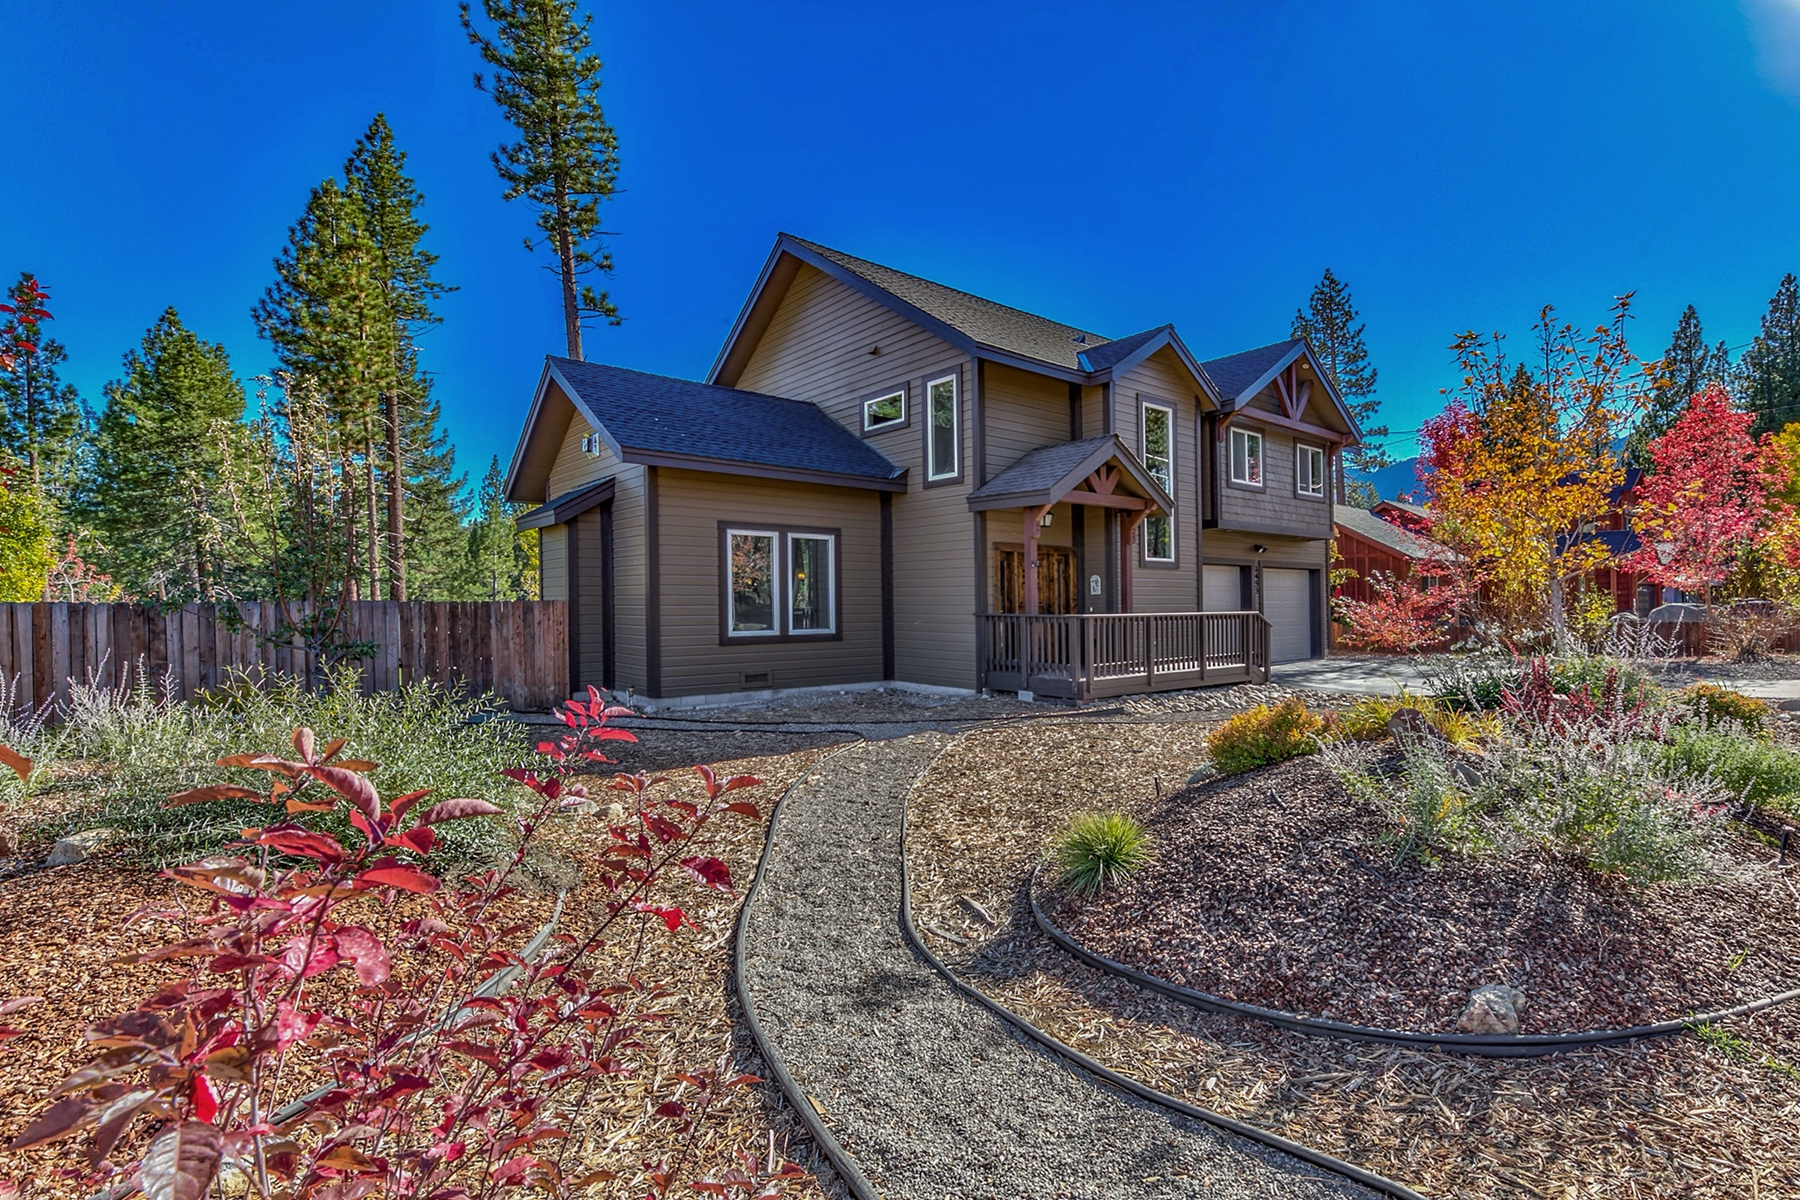 Single Family Home for Active at 1453 Mount Olympia Circle, South Lake Tahoe, CA, 96150 1453 Mount Olympia Cir South Lake Tahoe, California 96150 United States